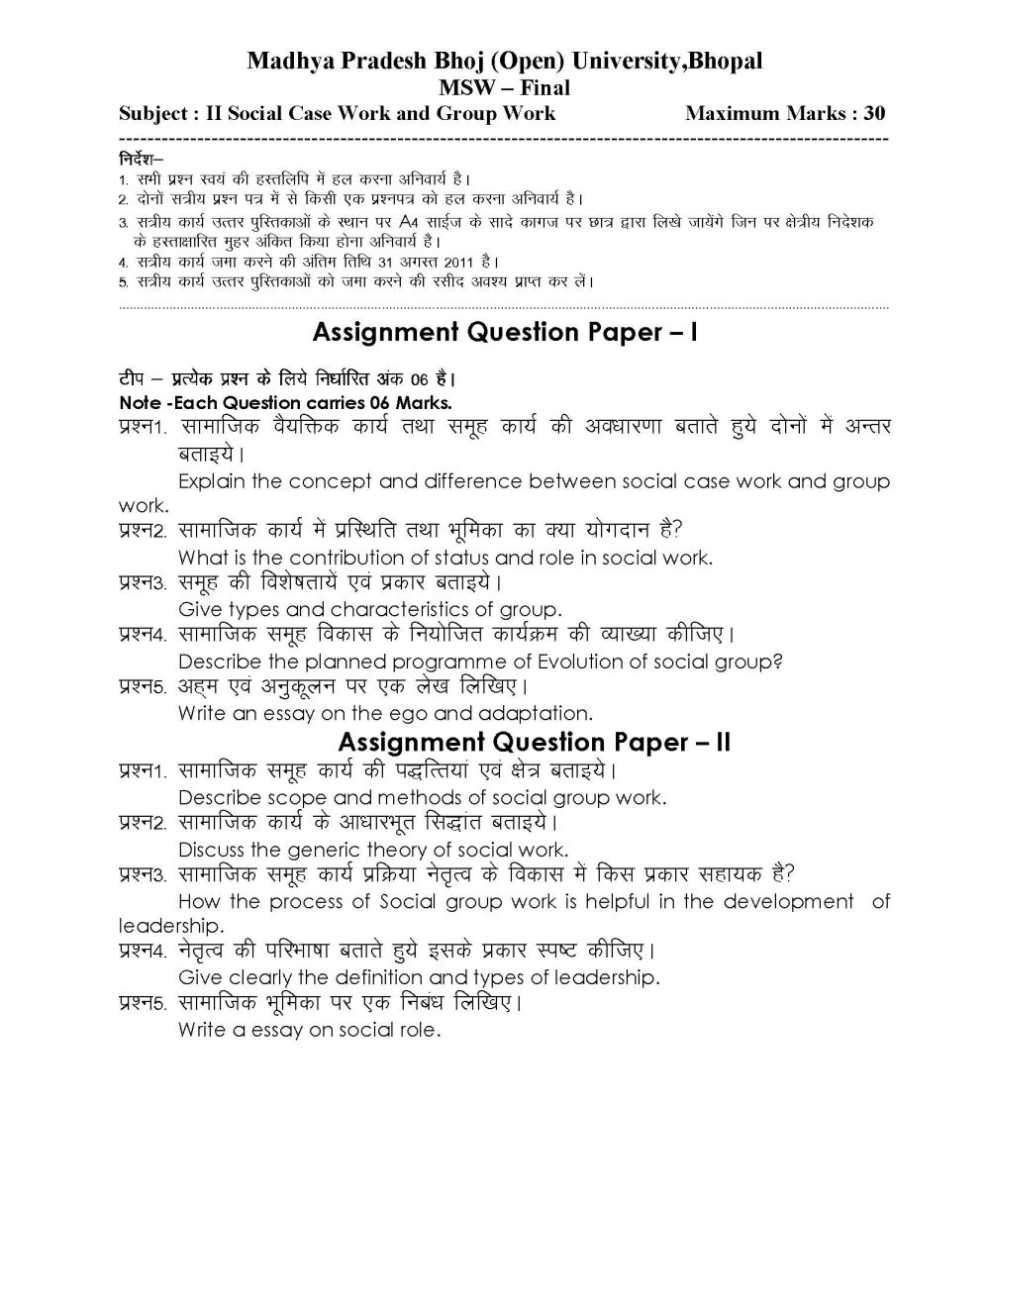 012 Bhoj University Bhopal Msw Essay Example Dreaded Definition Examples Love Beauty Full